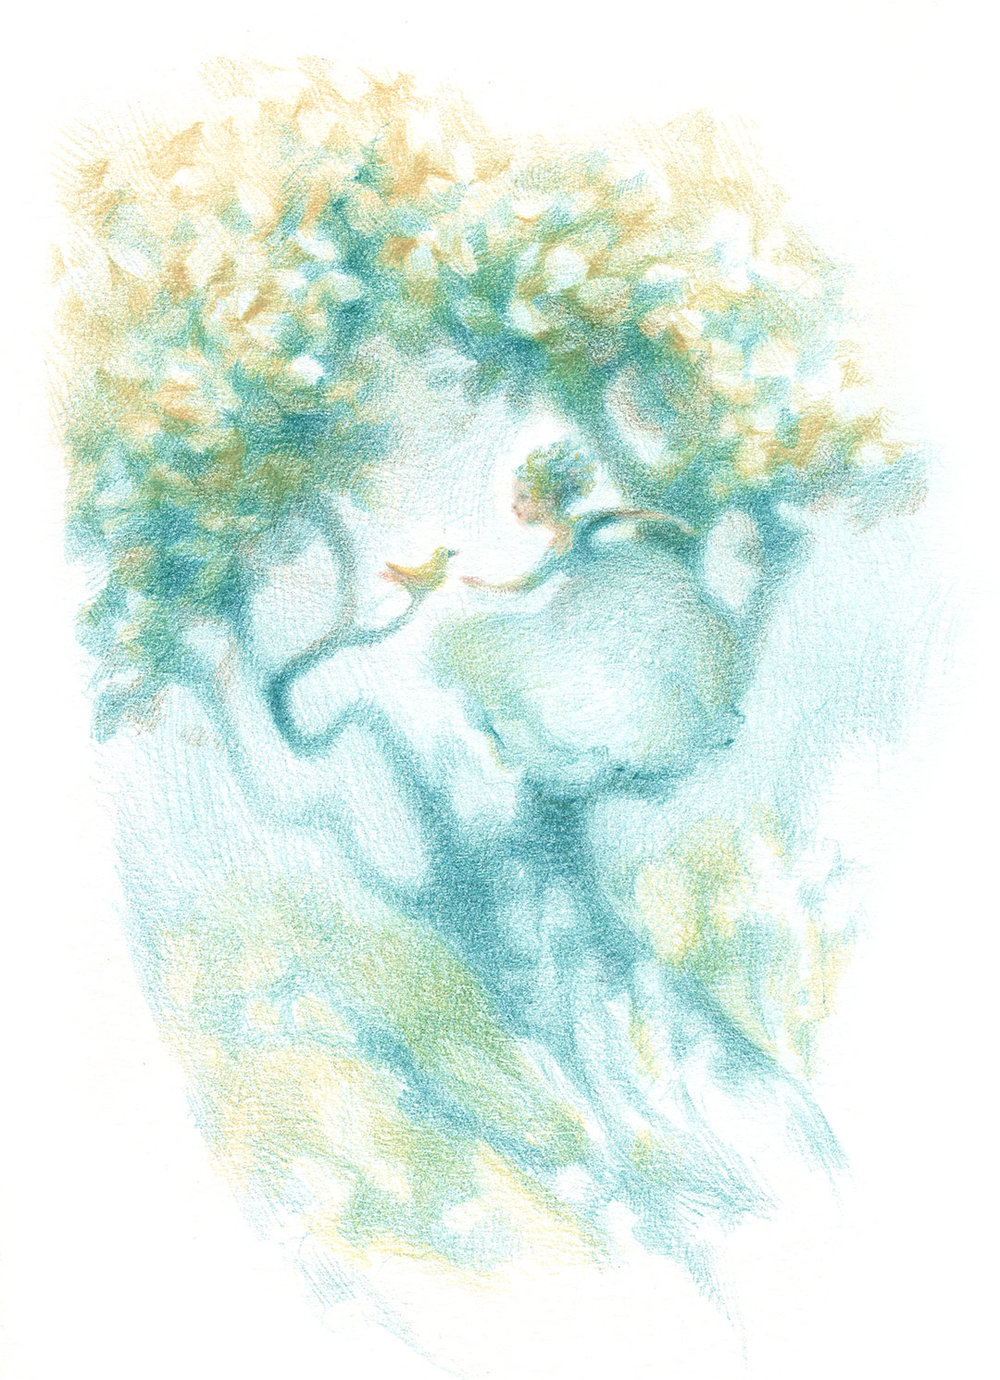 Children's Illustration in colored pencil: Blue Tree Princess